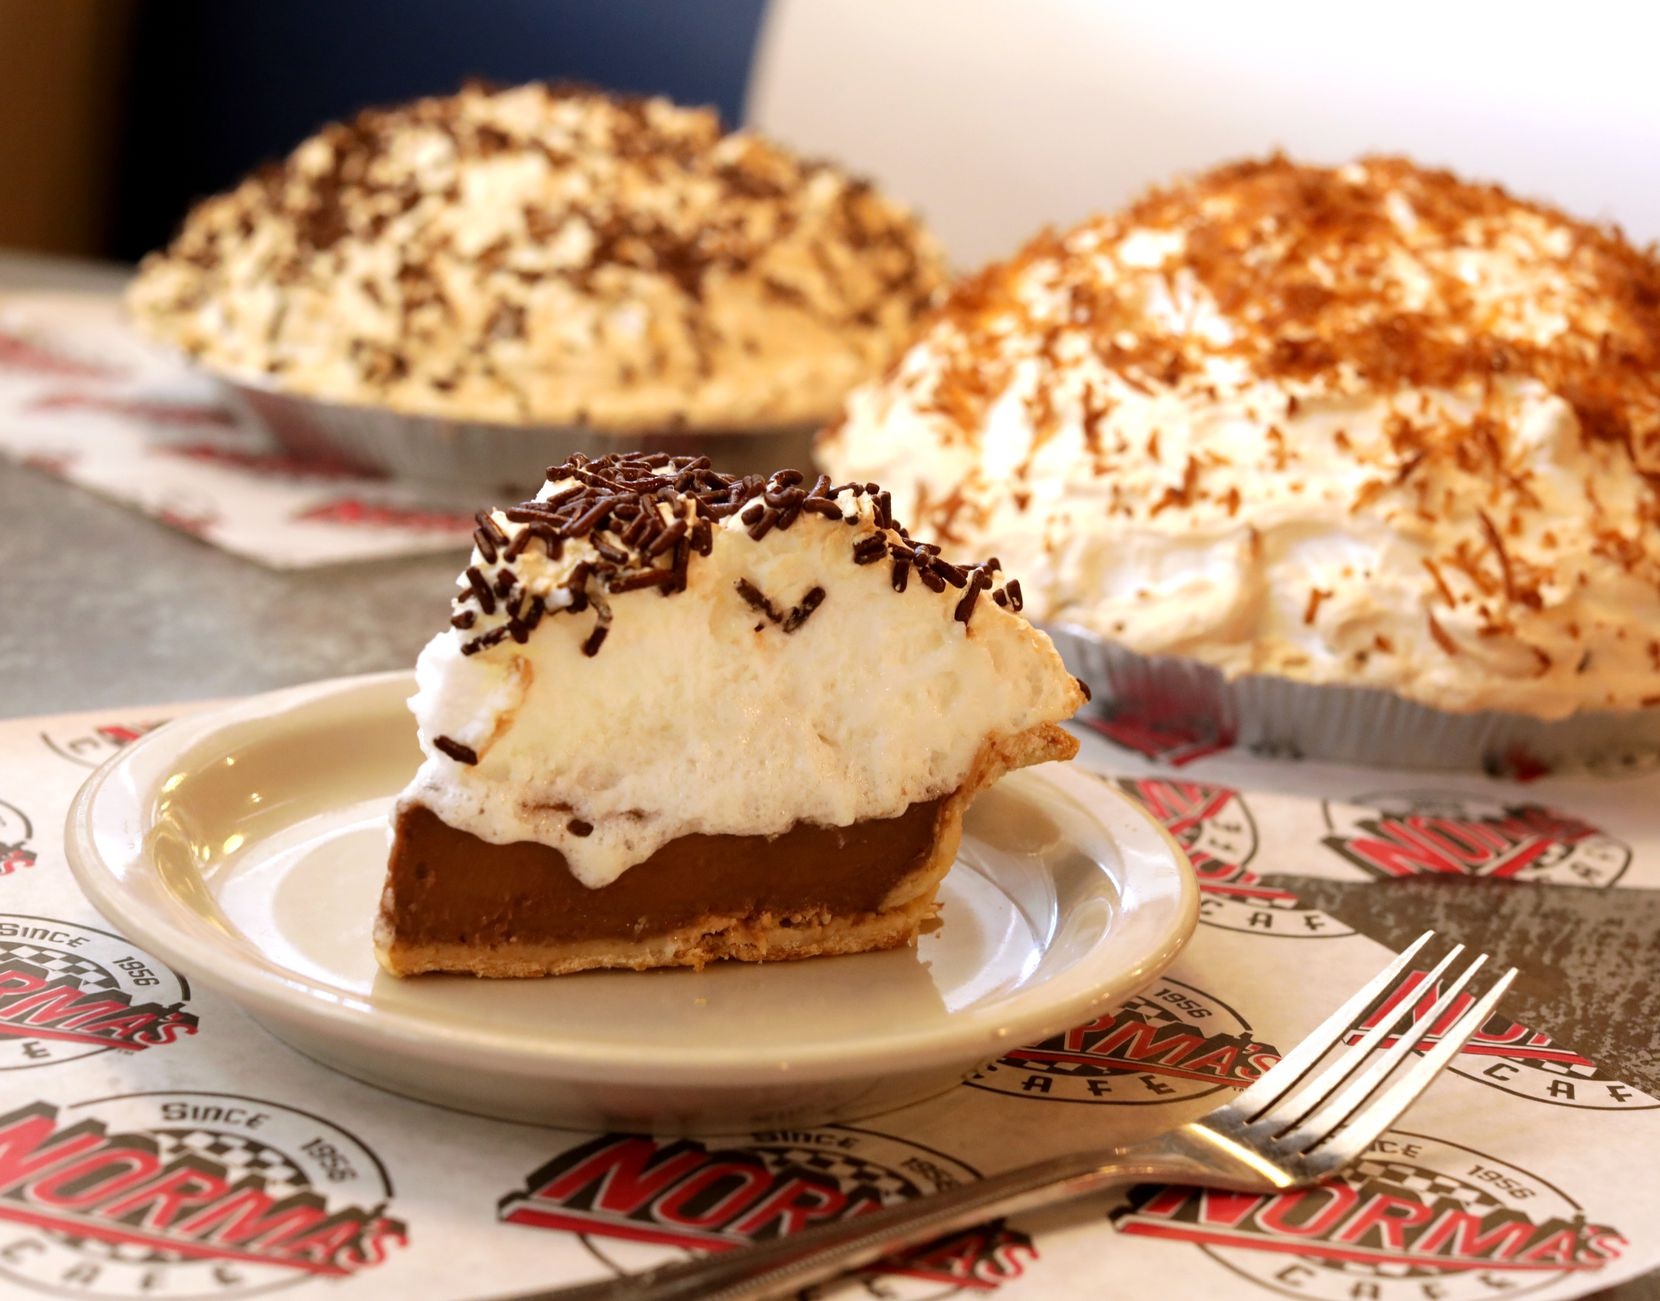 The Chocolate Mile High Pie at Norma's Cafe in Dallas